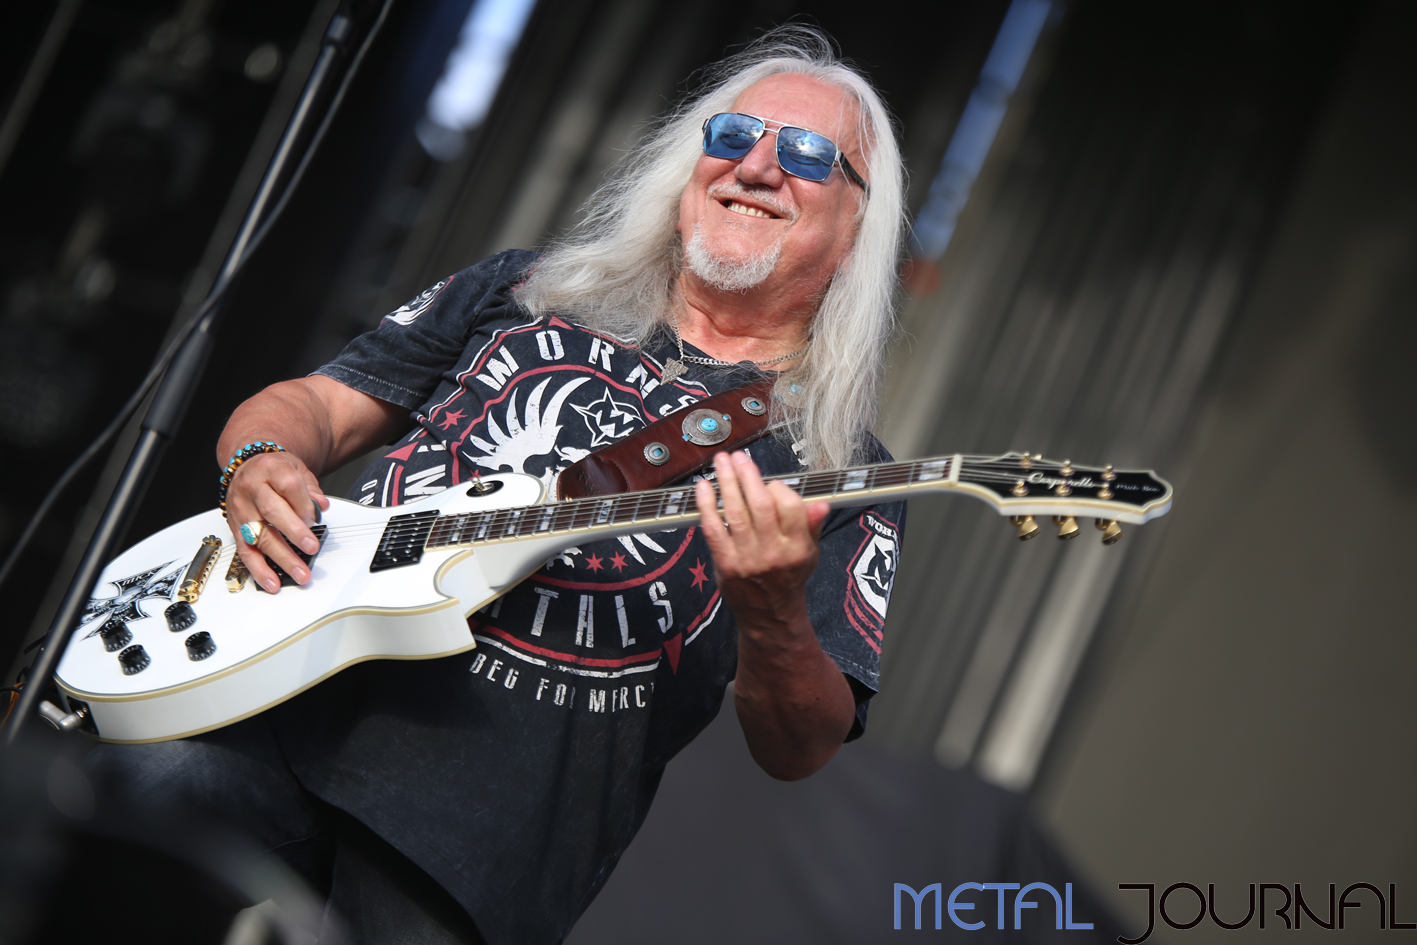 uriah heep rock fest 18 - metal journal pic 5